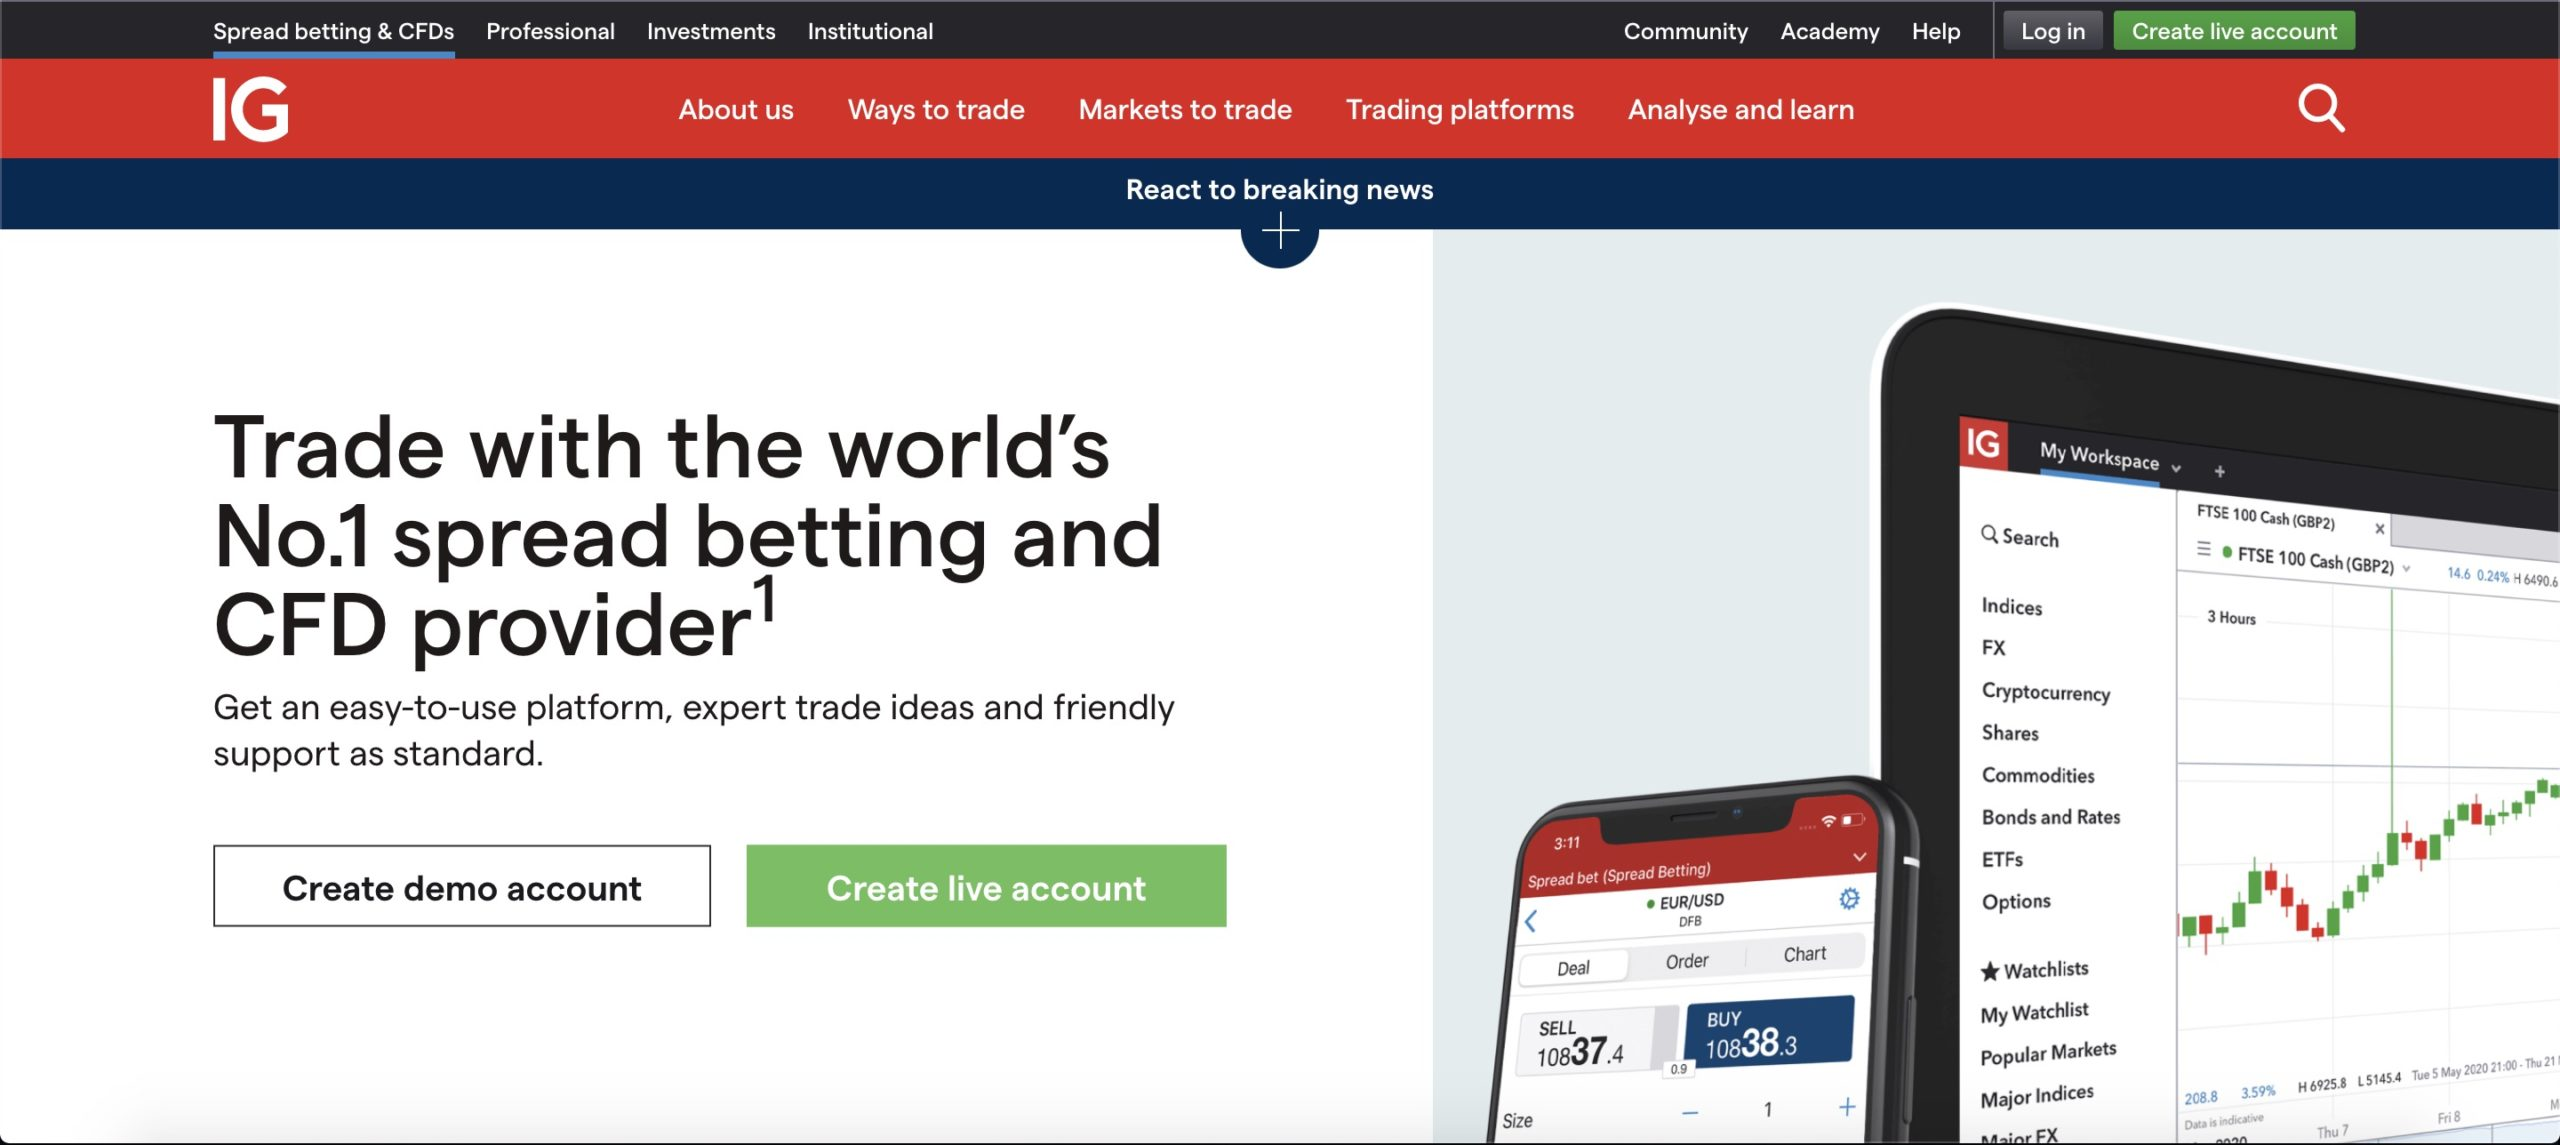 IG trading platform UK home page